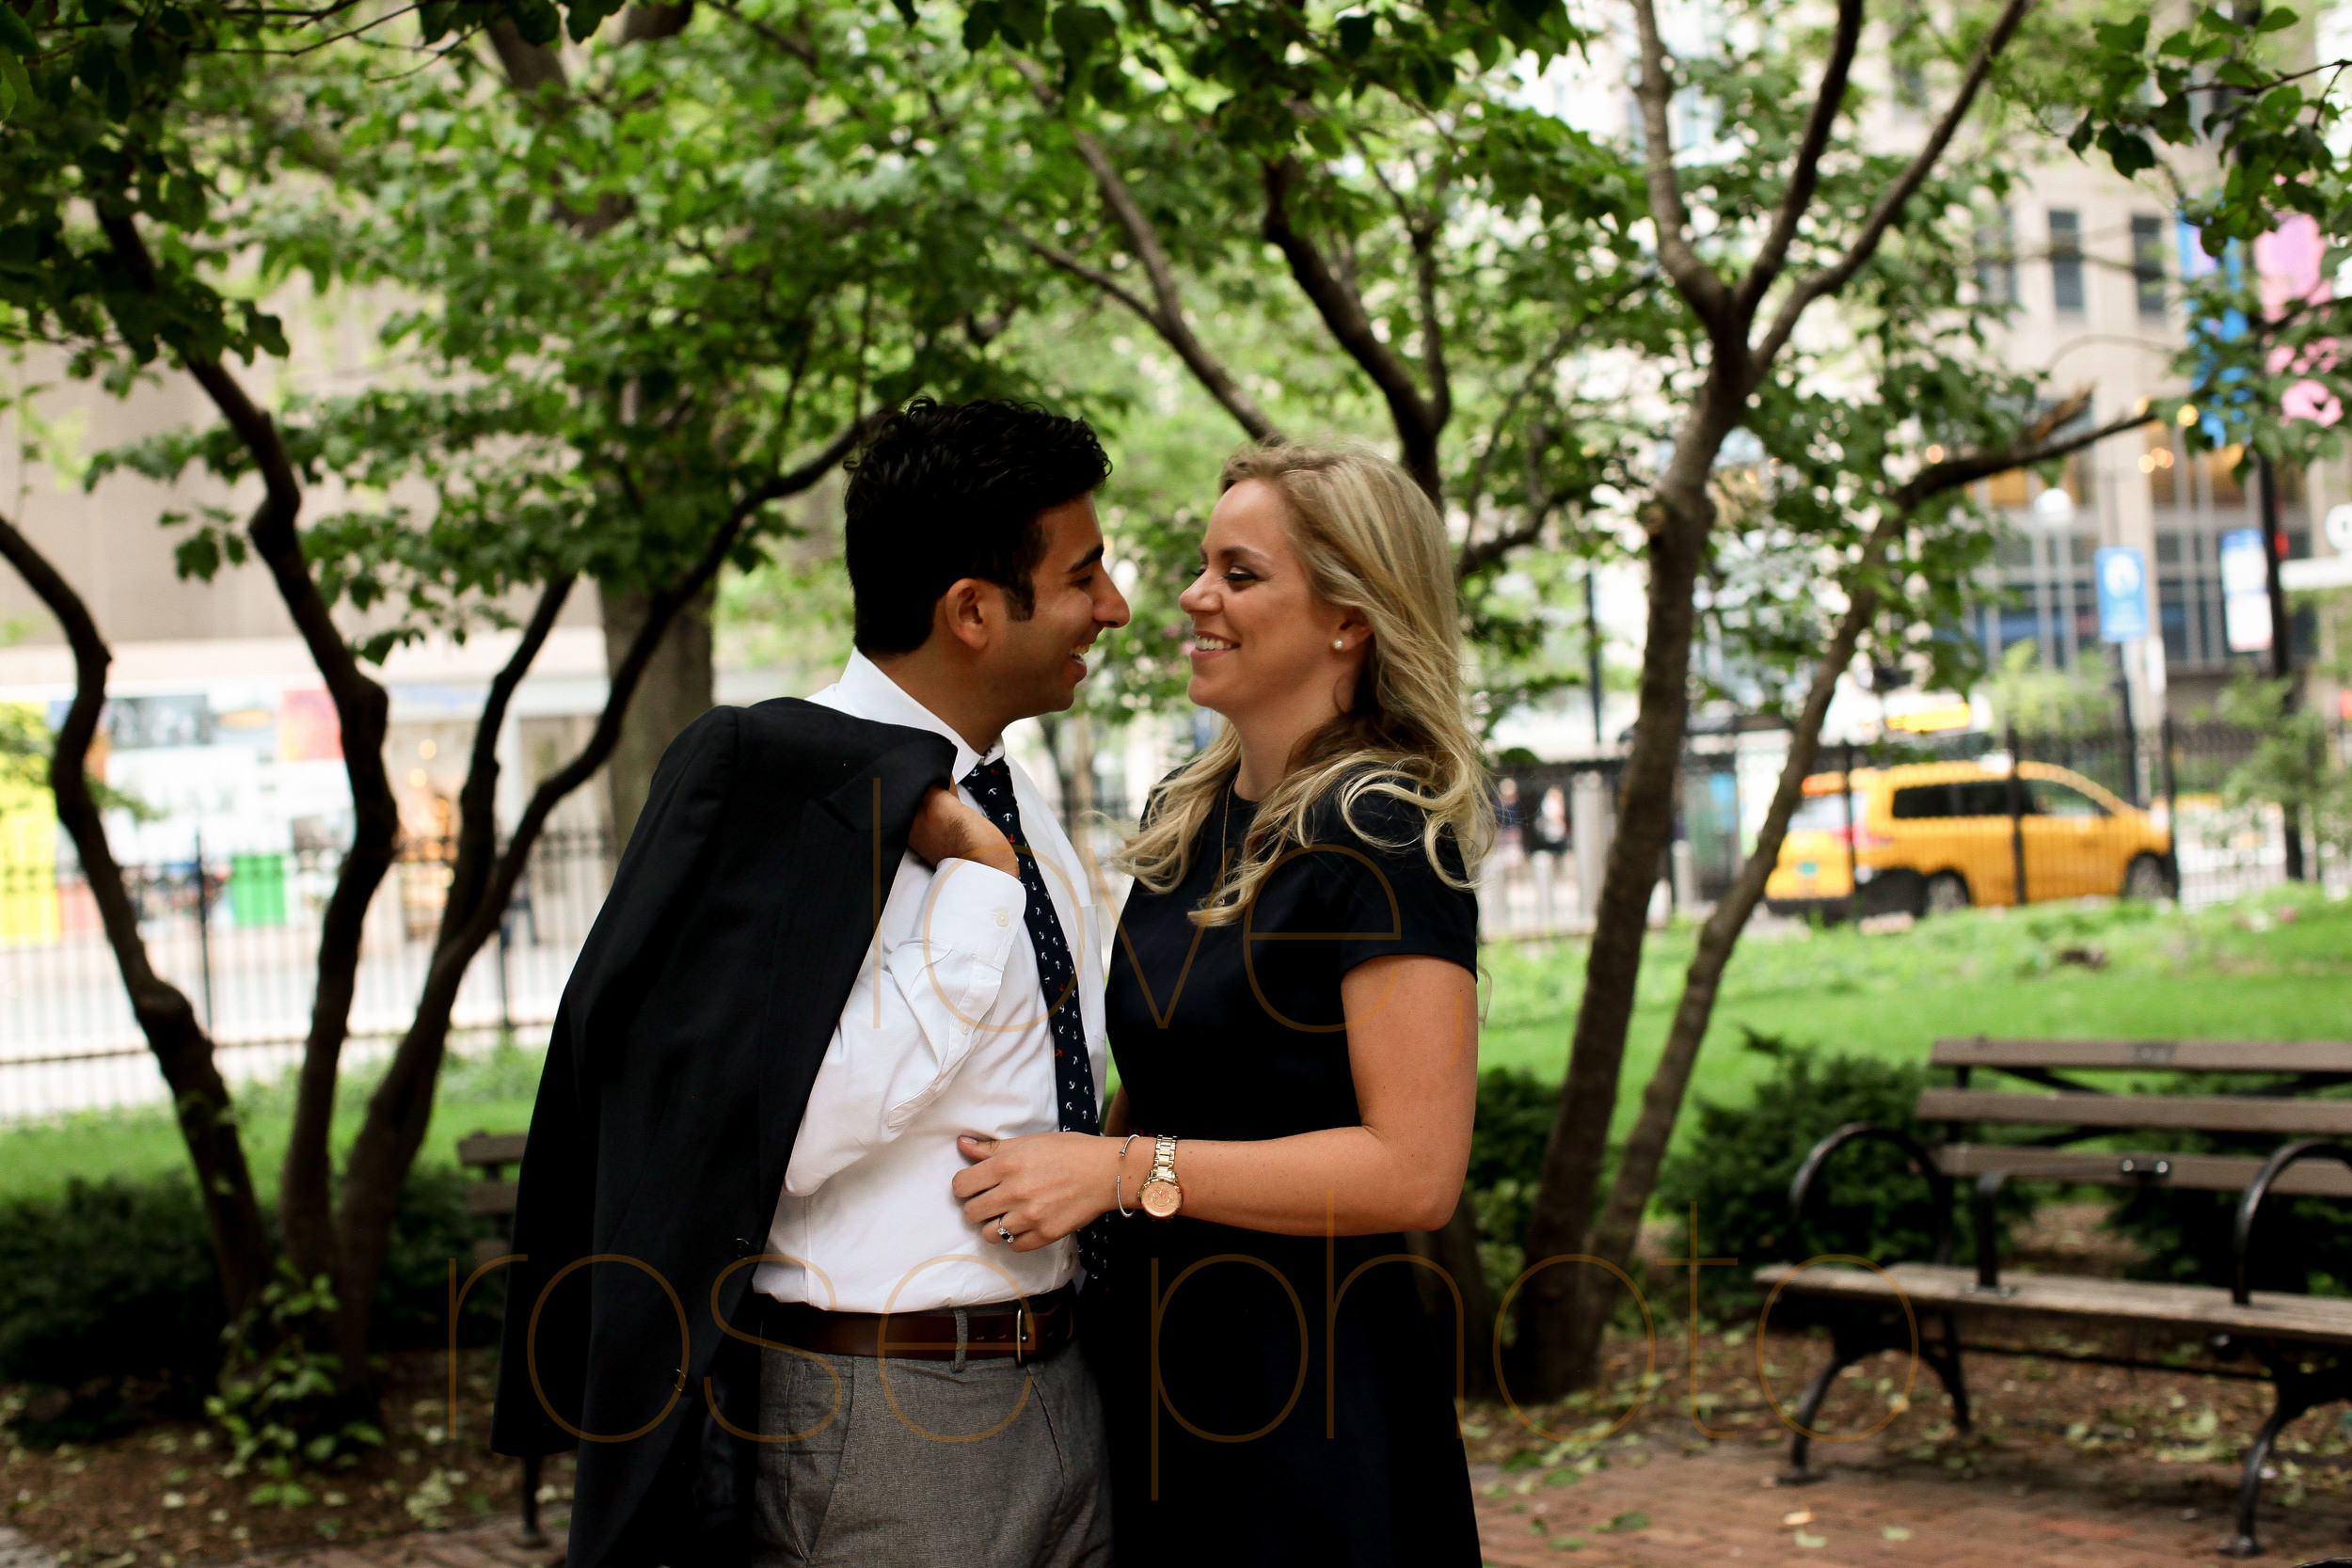 Amy + Ammar engagment shoot downtown drumbar magnificante mile chicago river wedding photographer-005.jpg